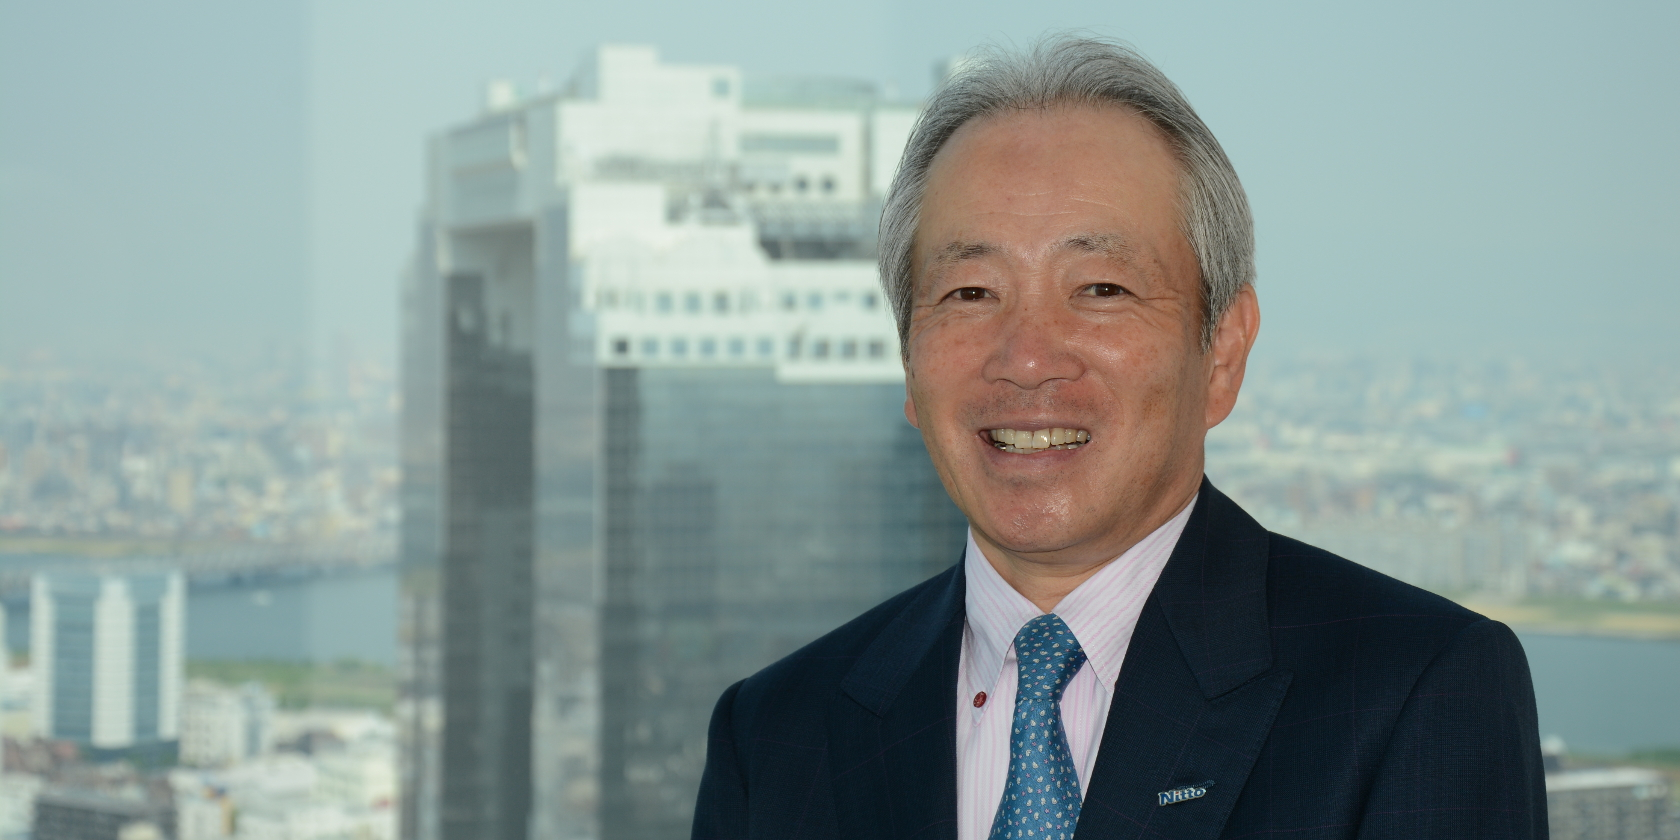 Nitto Denko President Talks New Business Strategies for Next 100 Years